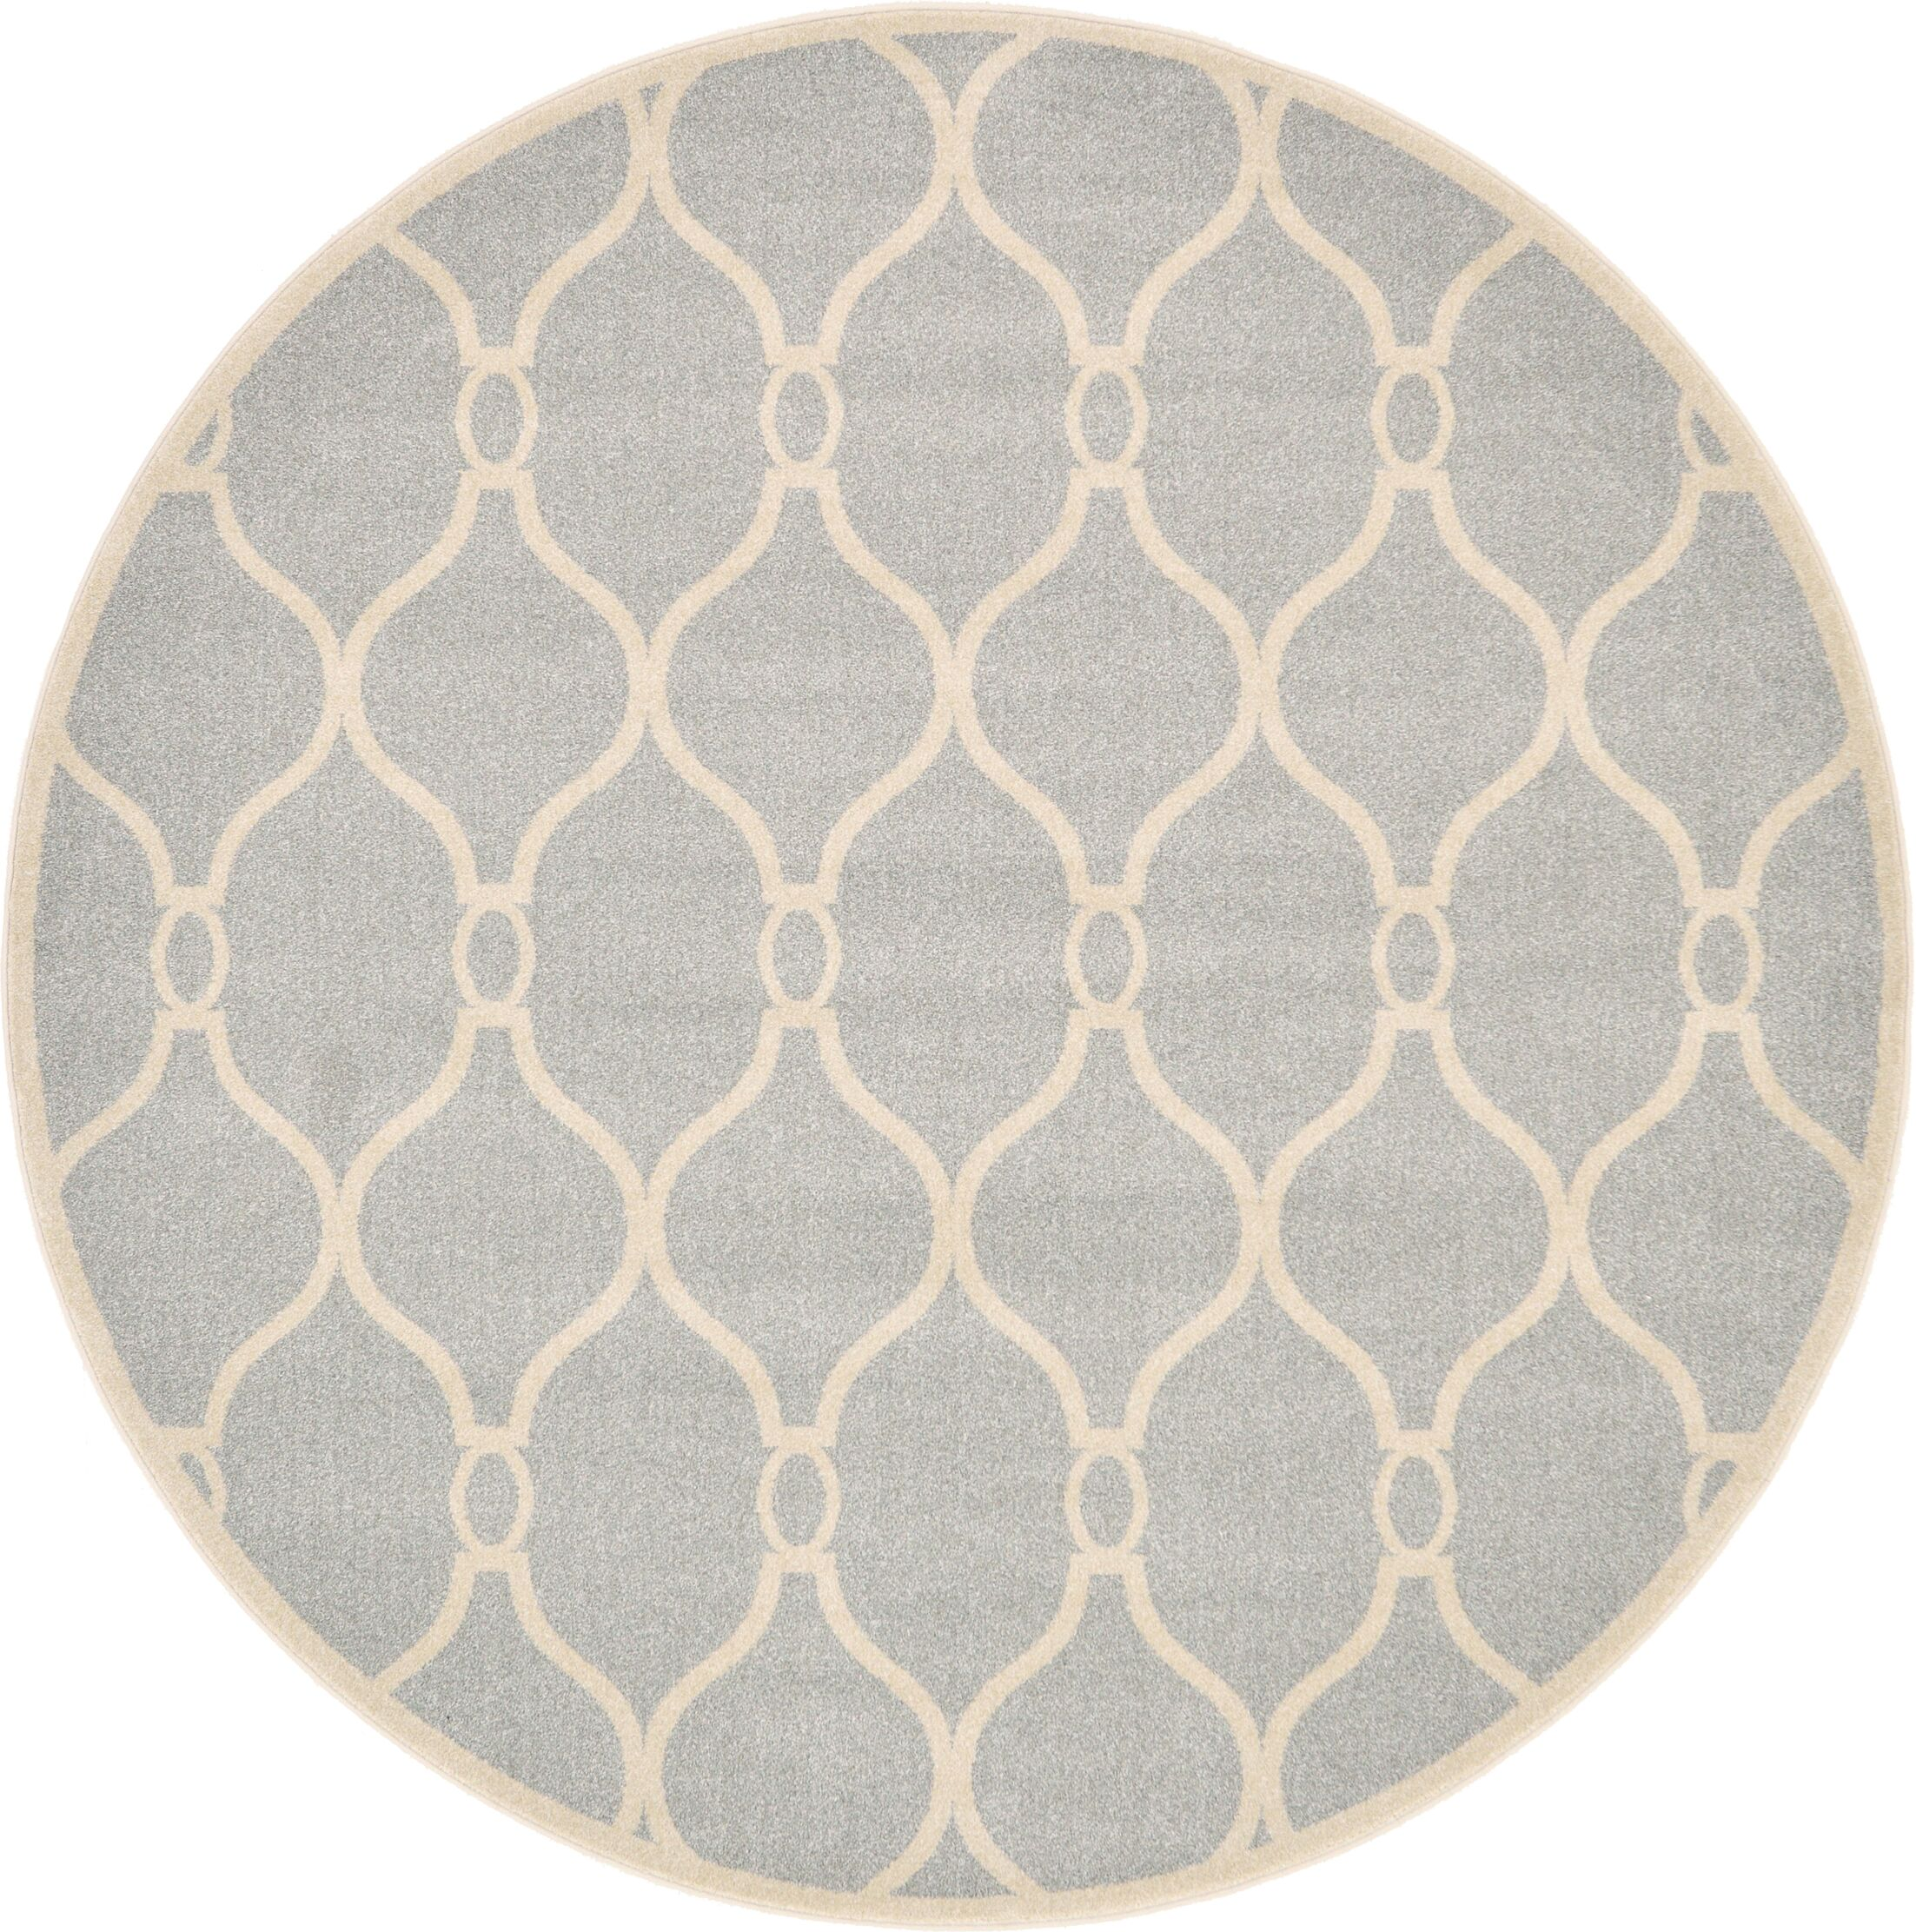 Molly Light Gray Area Rug Rug Size: Round 8'